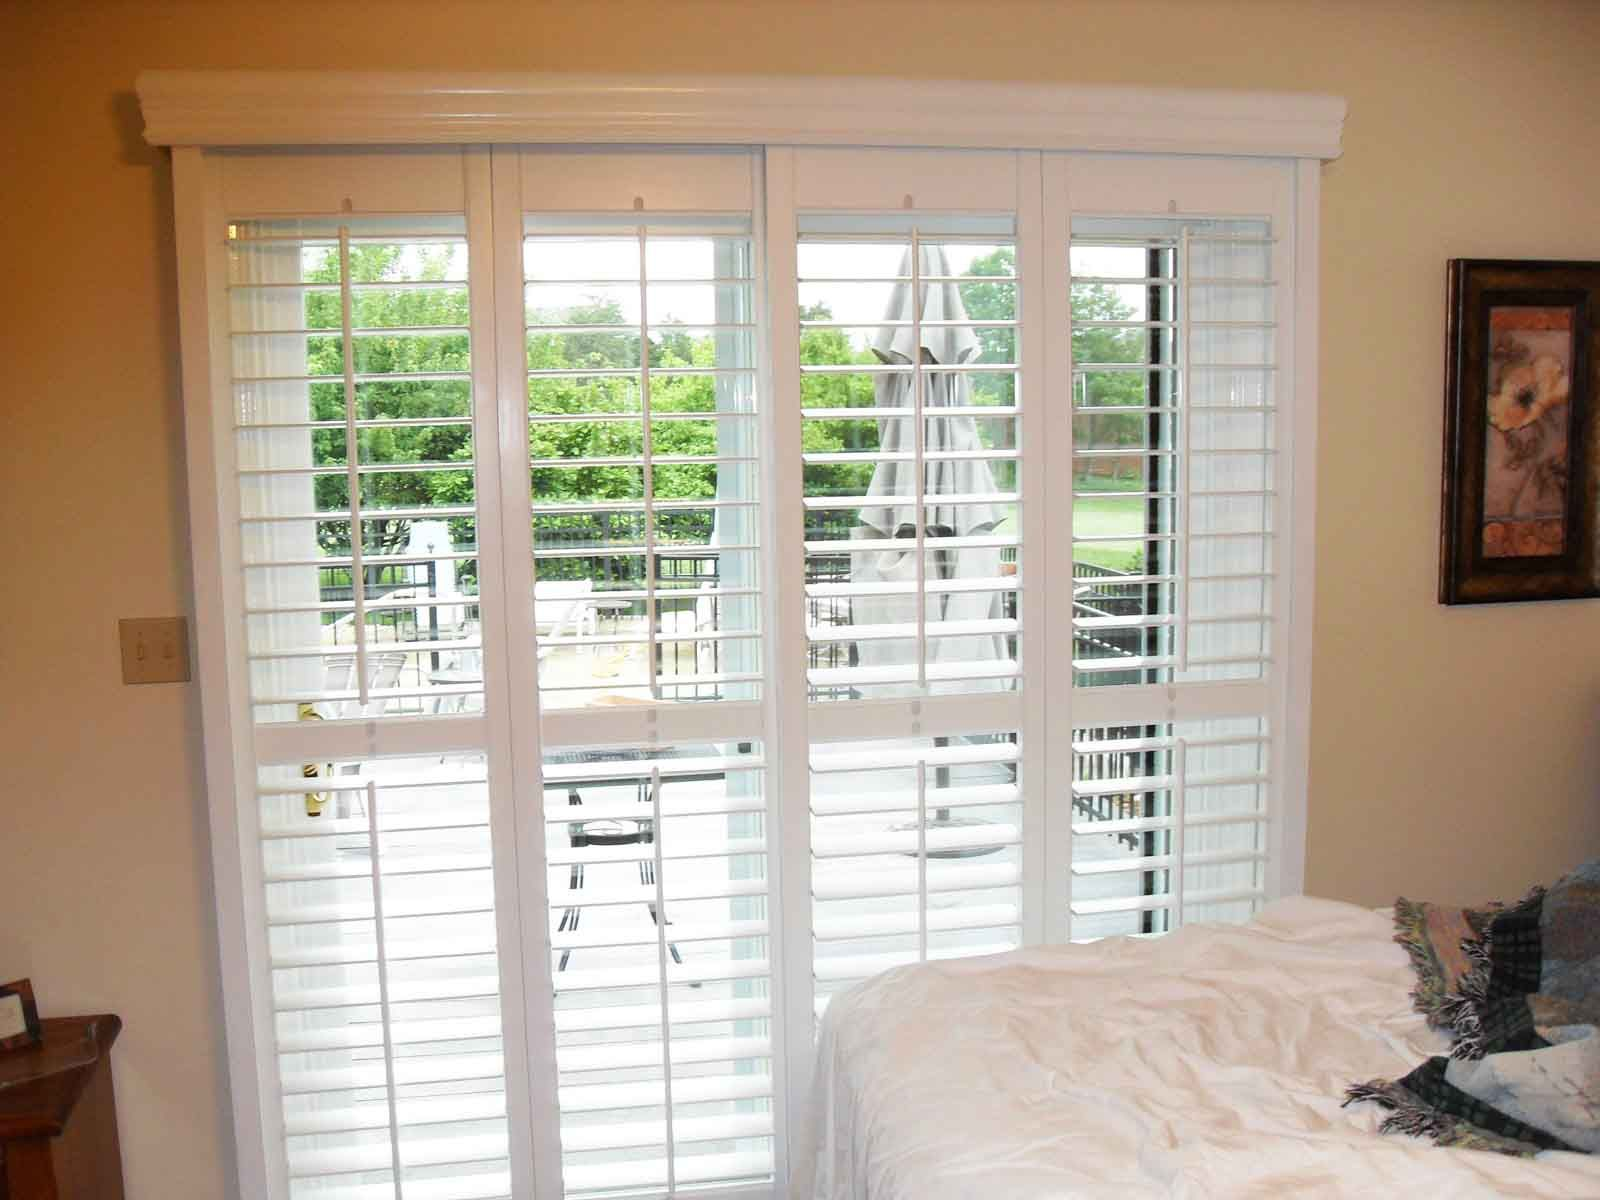 Blinds for French doors | Material, Cost, Color of the Blind - blinds for